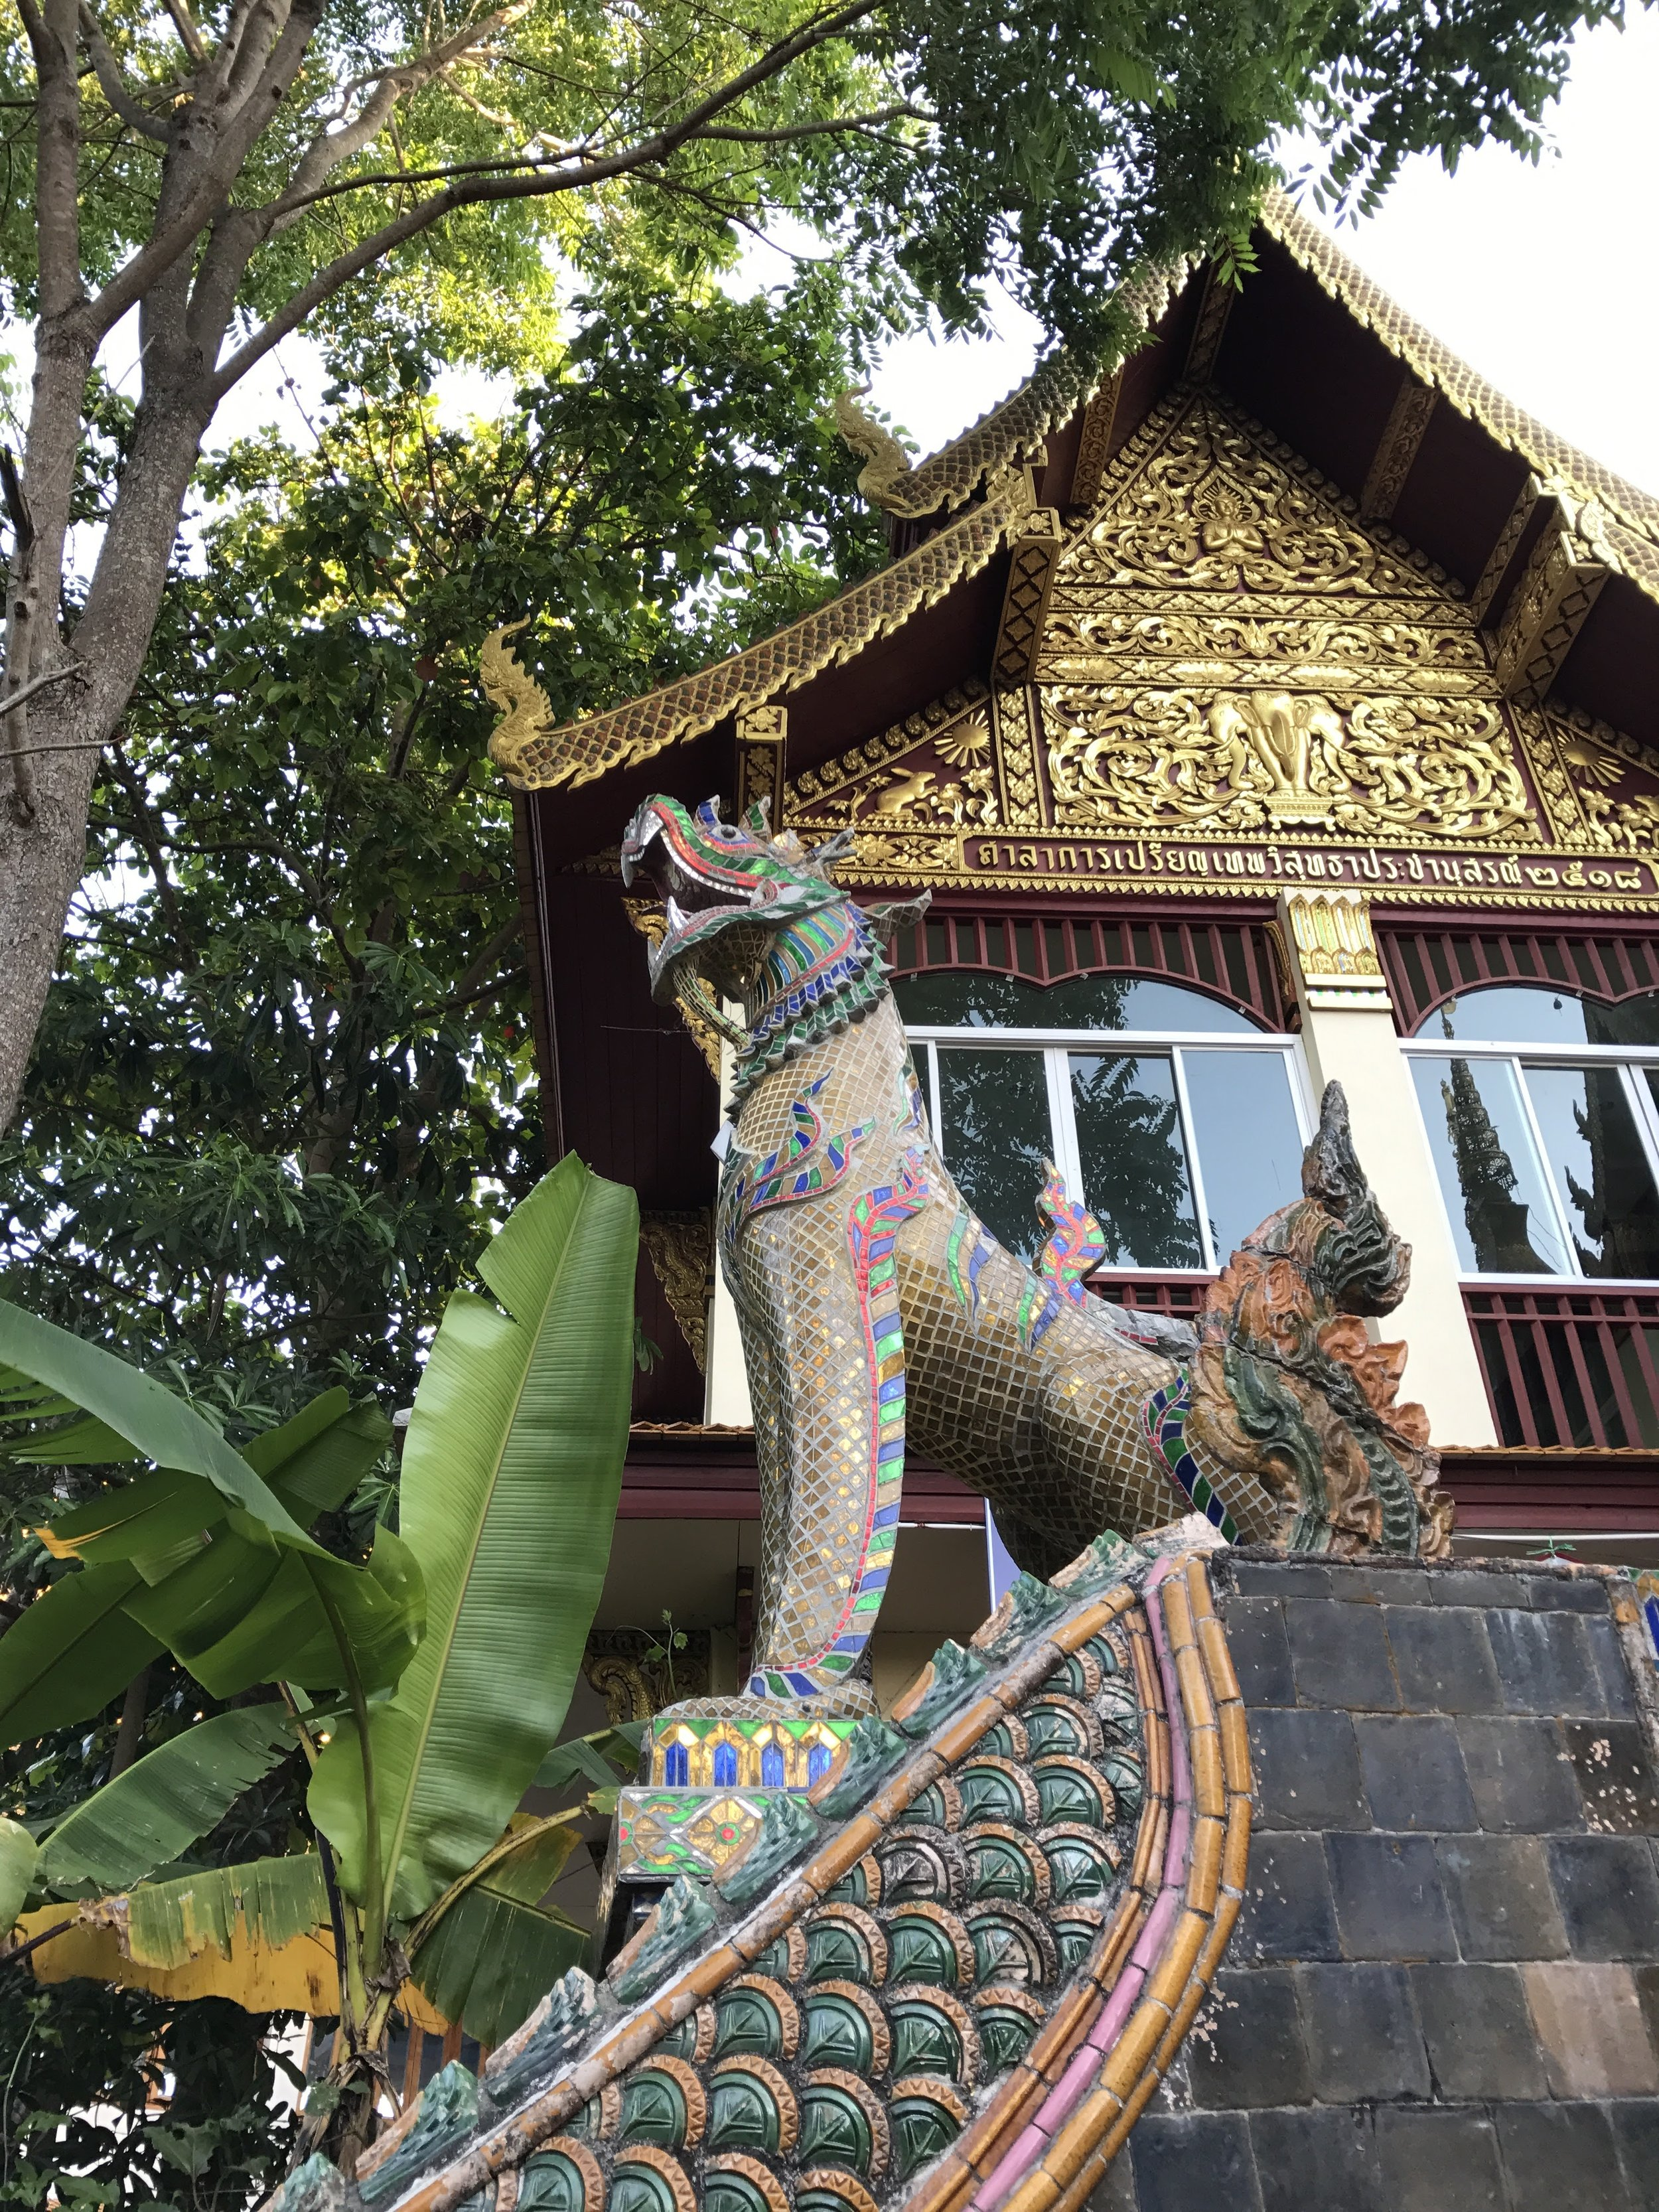 Dragons flank both sides of the top of the staircase. There's so much to see at Doi Suthep, we almost missed them!